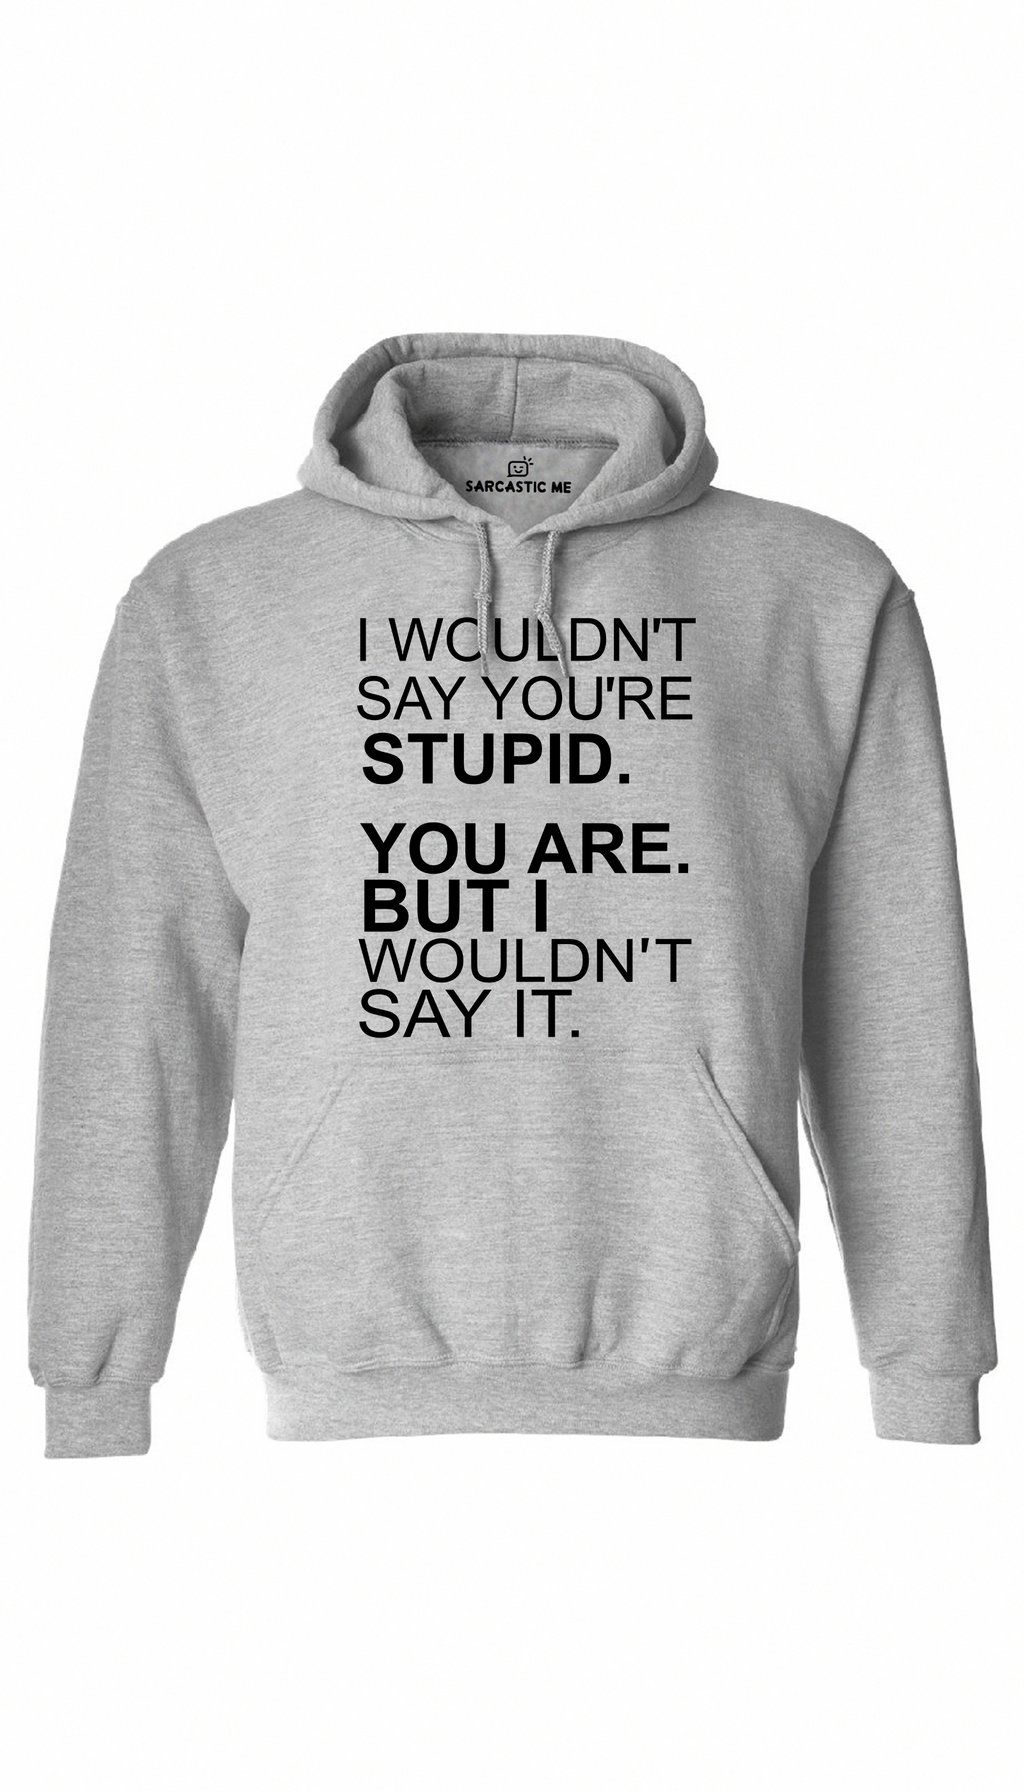 Buy Cool Shirts I/'m With Stupid Hoodie White Print